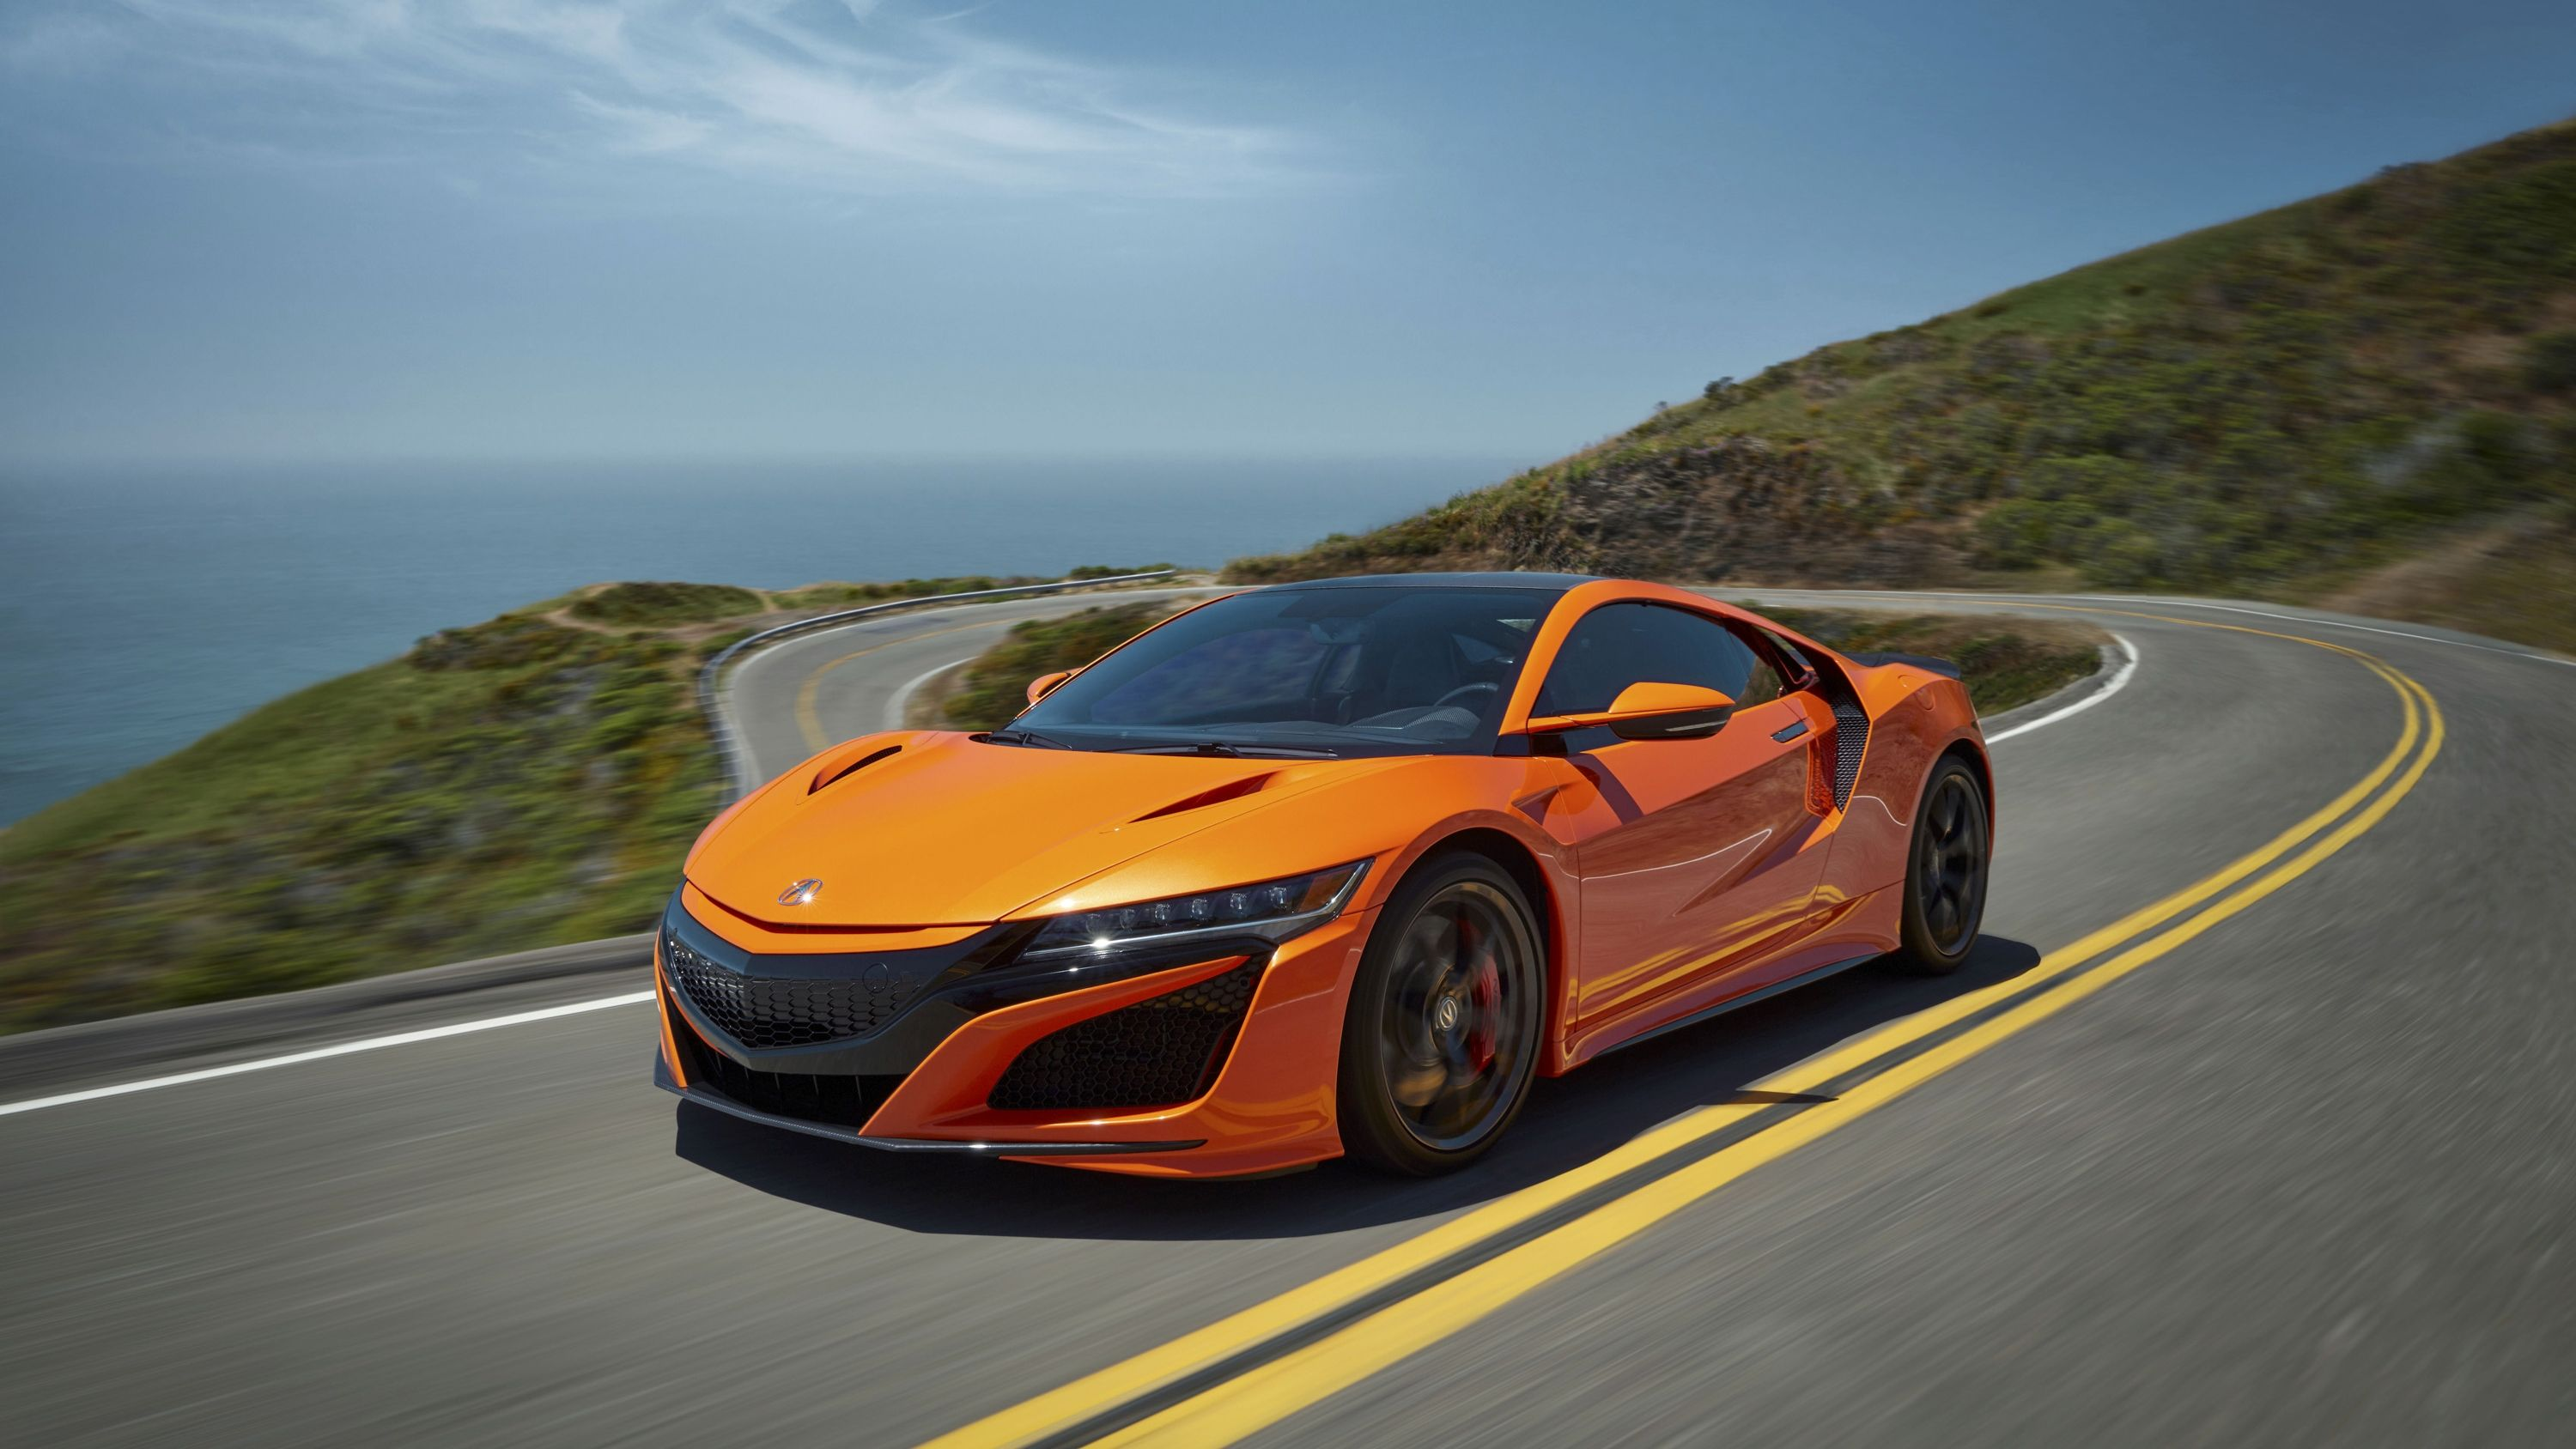 The Acura Nsx Just Got A Lot Better For 2019 Top Speed Honda Sports Car Acura Nsx Nsx